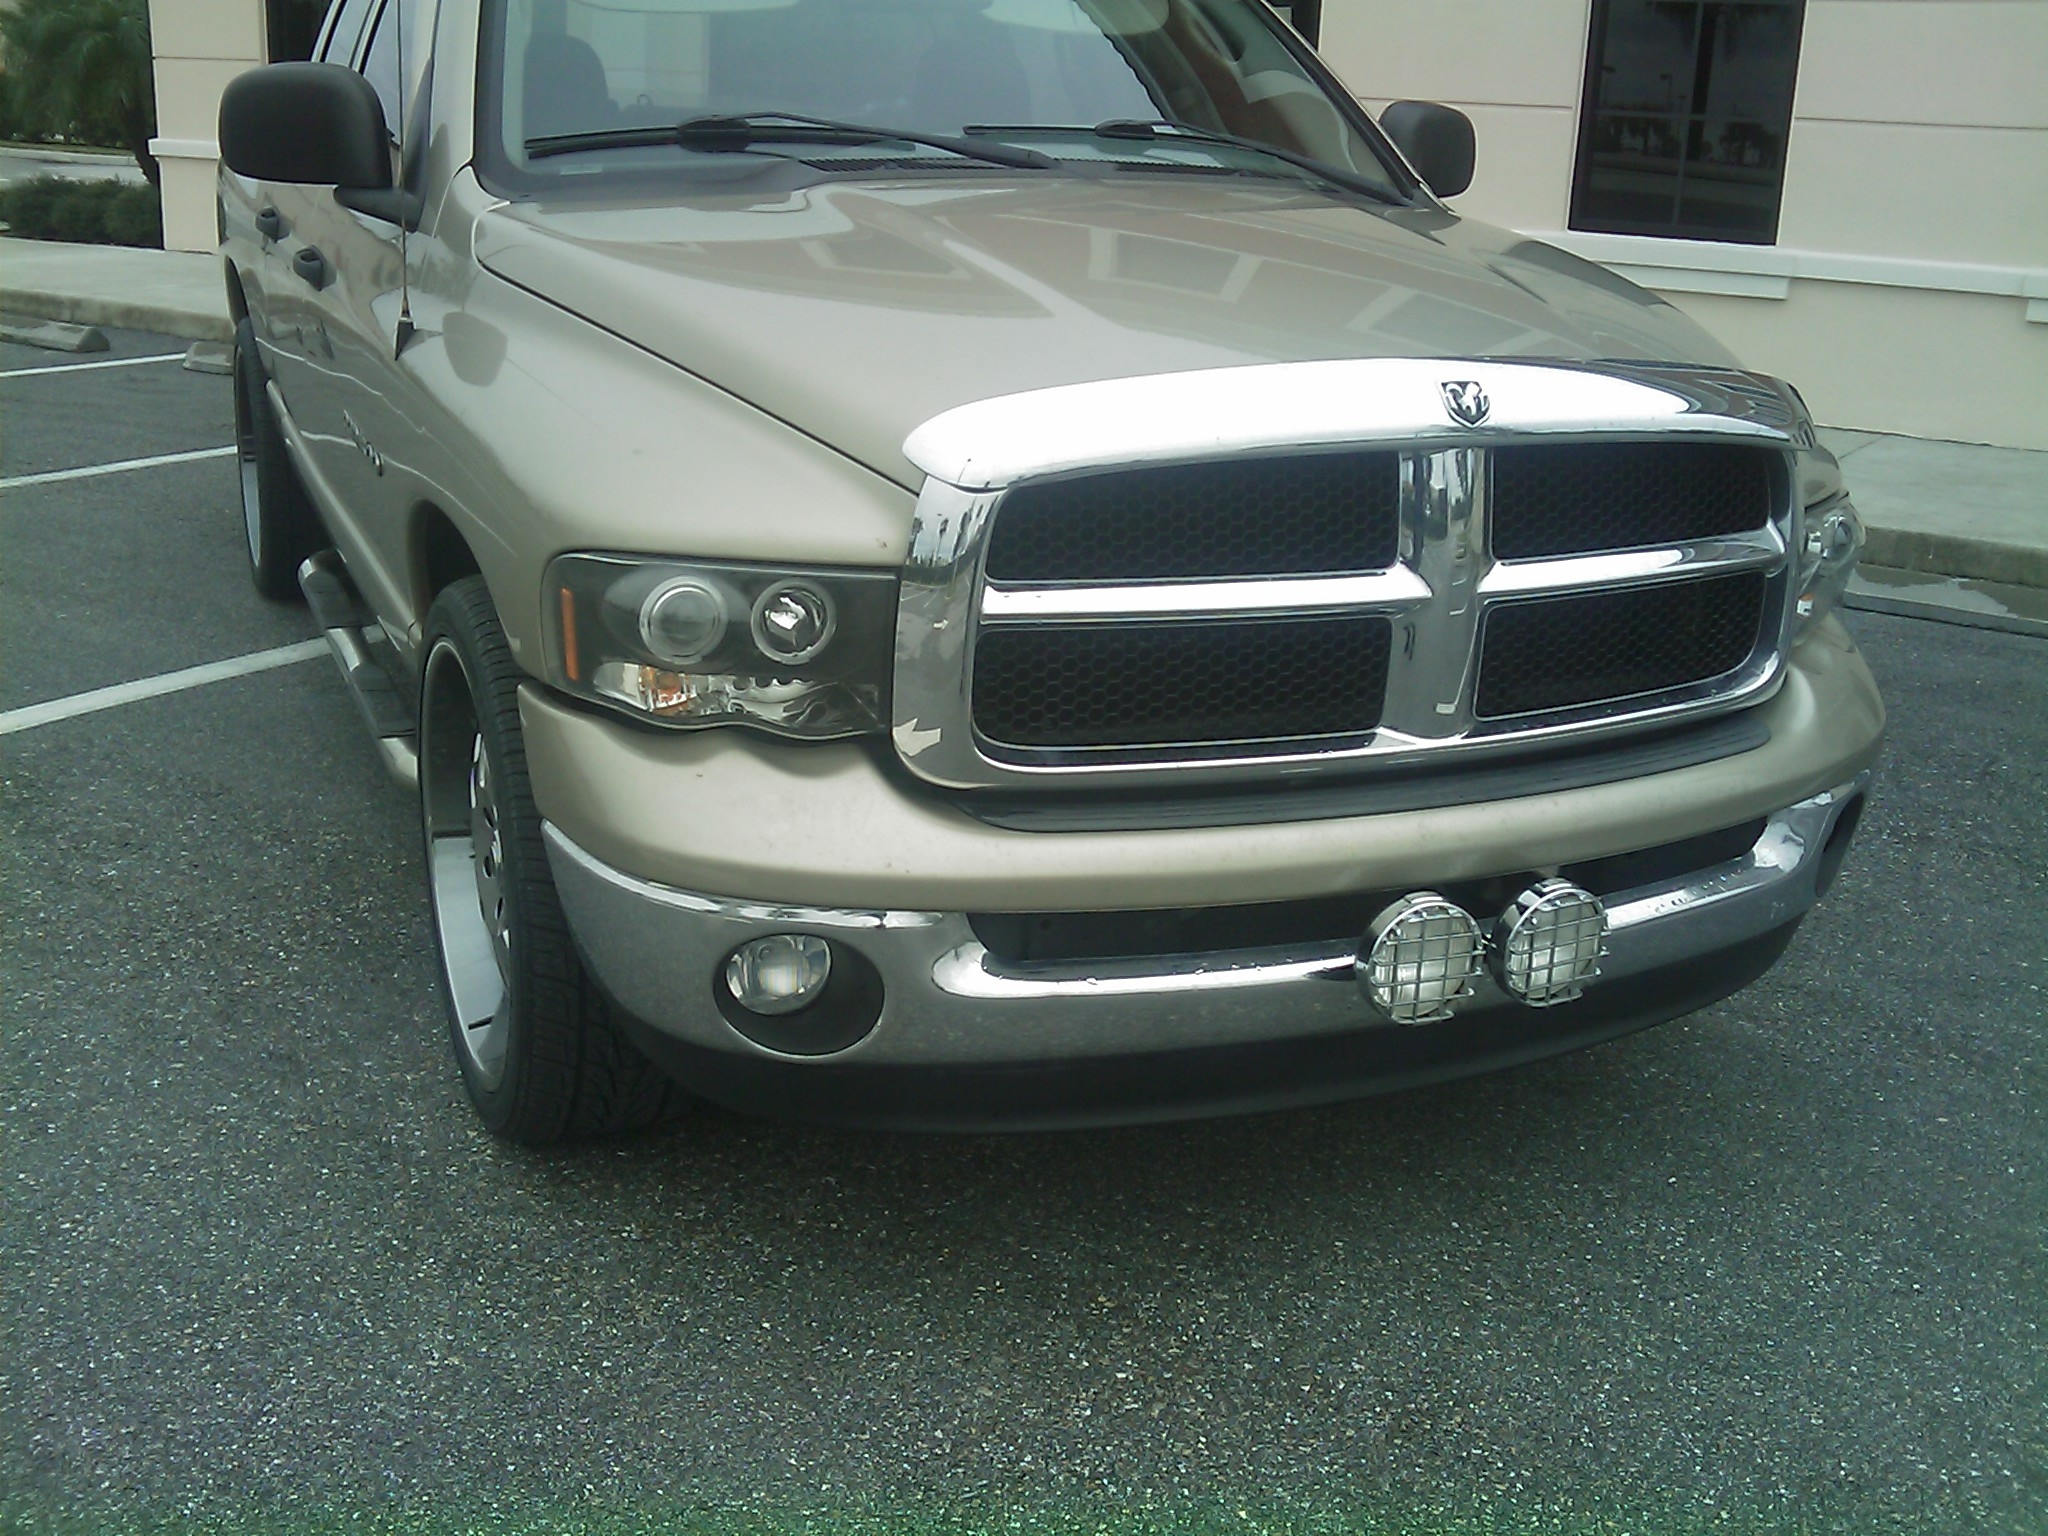 SRT-8_Thunder 2003 Dodge Ram 1500 Quad Cab 11461581